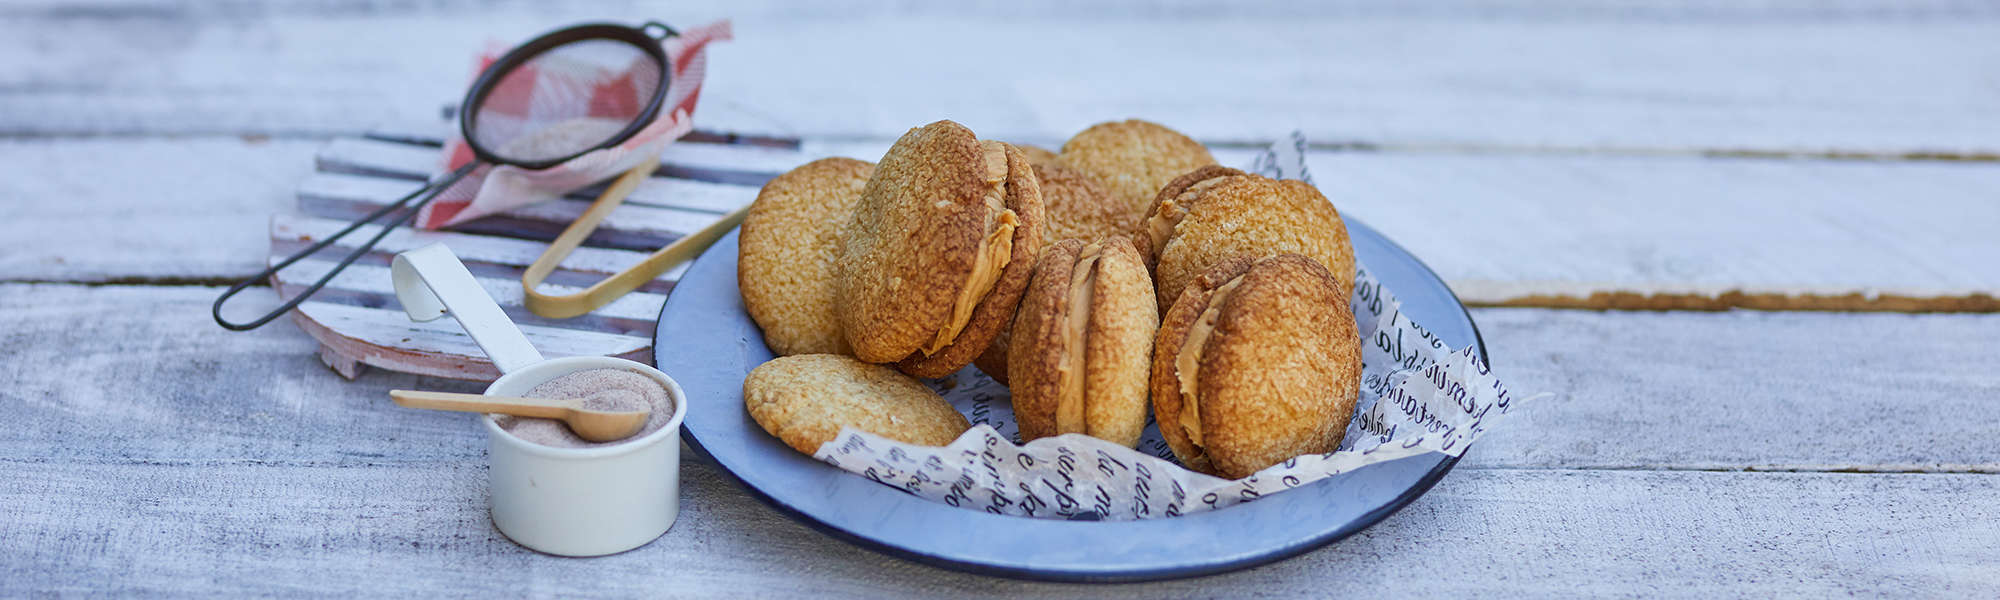 Easy Peanut Butter Cookies Recipe by Lakanto